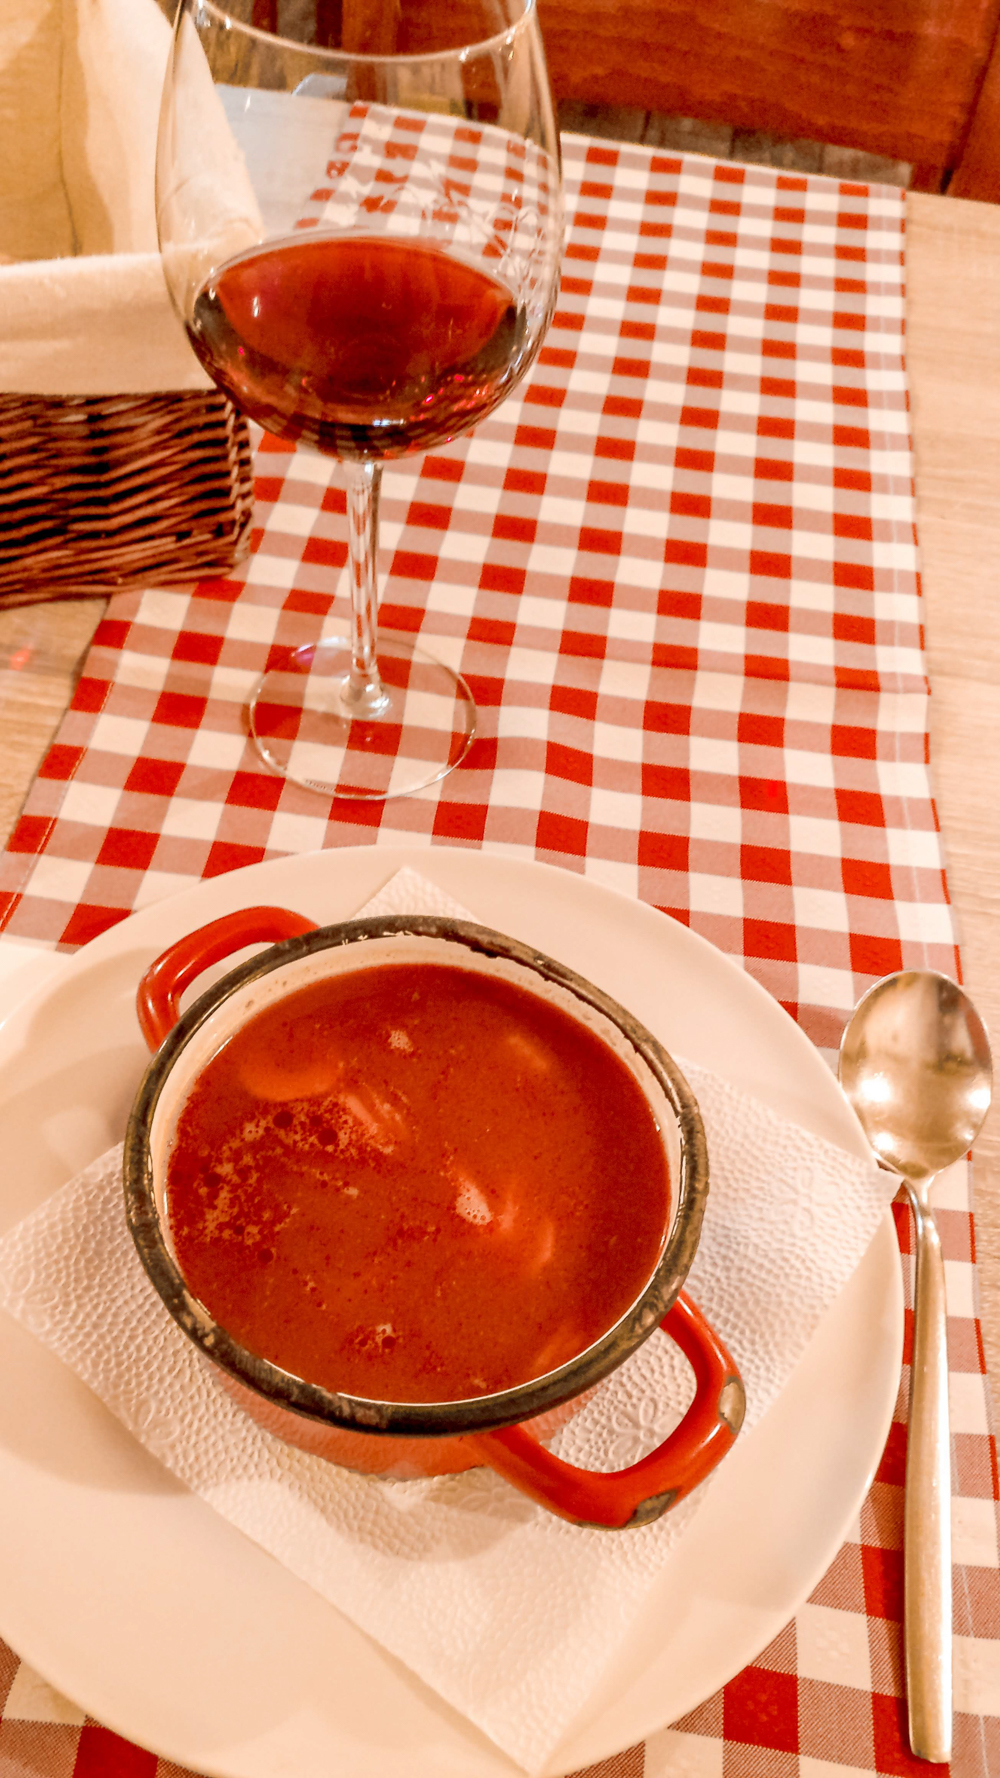 Goulash soup at Pörc & Prézli restaurant - How to explore Budapest in 2 days? - a local's travel guide with prices and map   Aliz's Wonderland